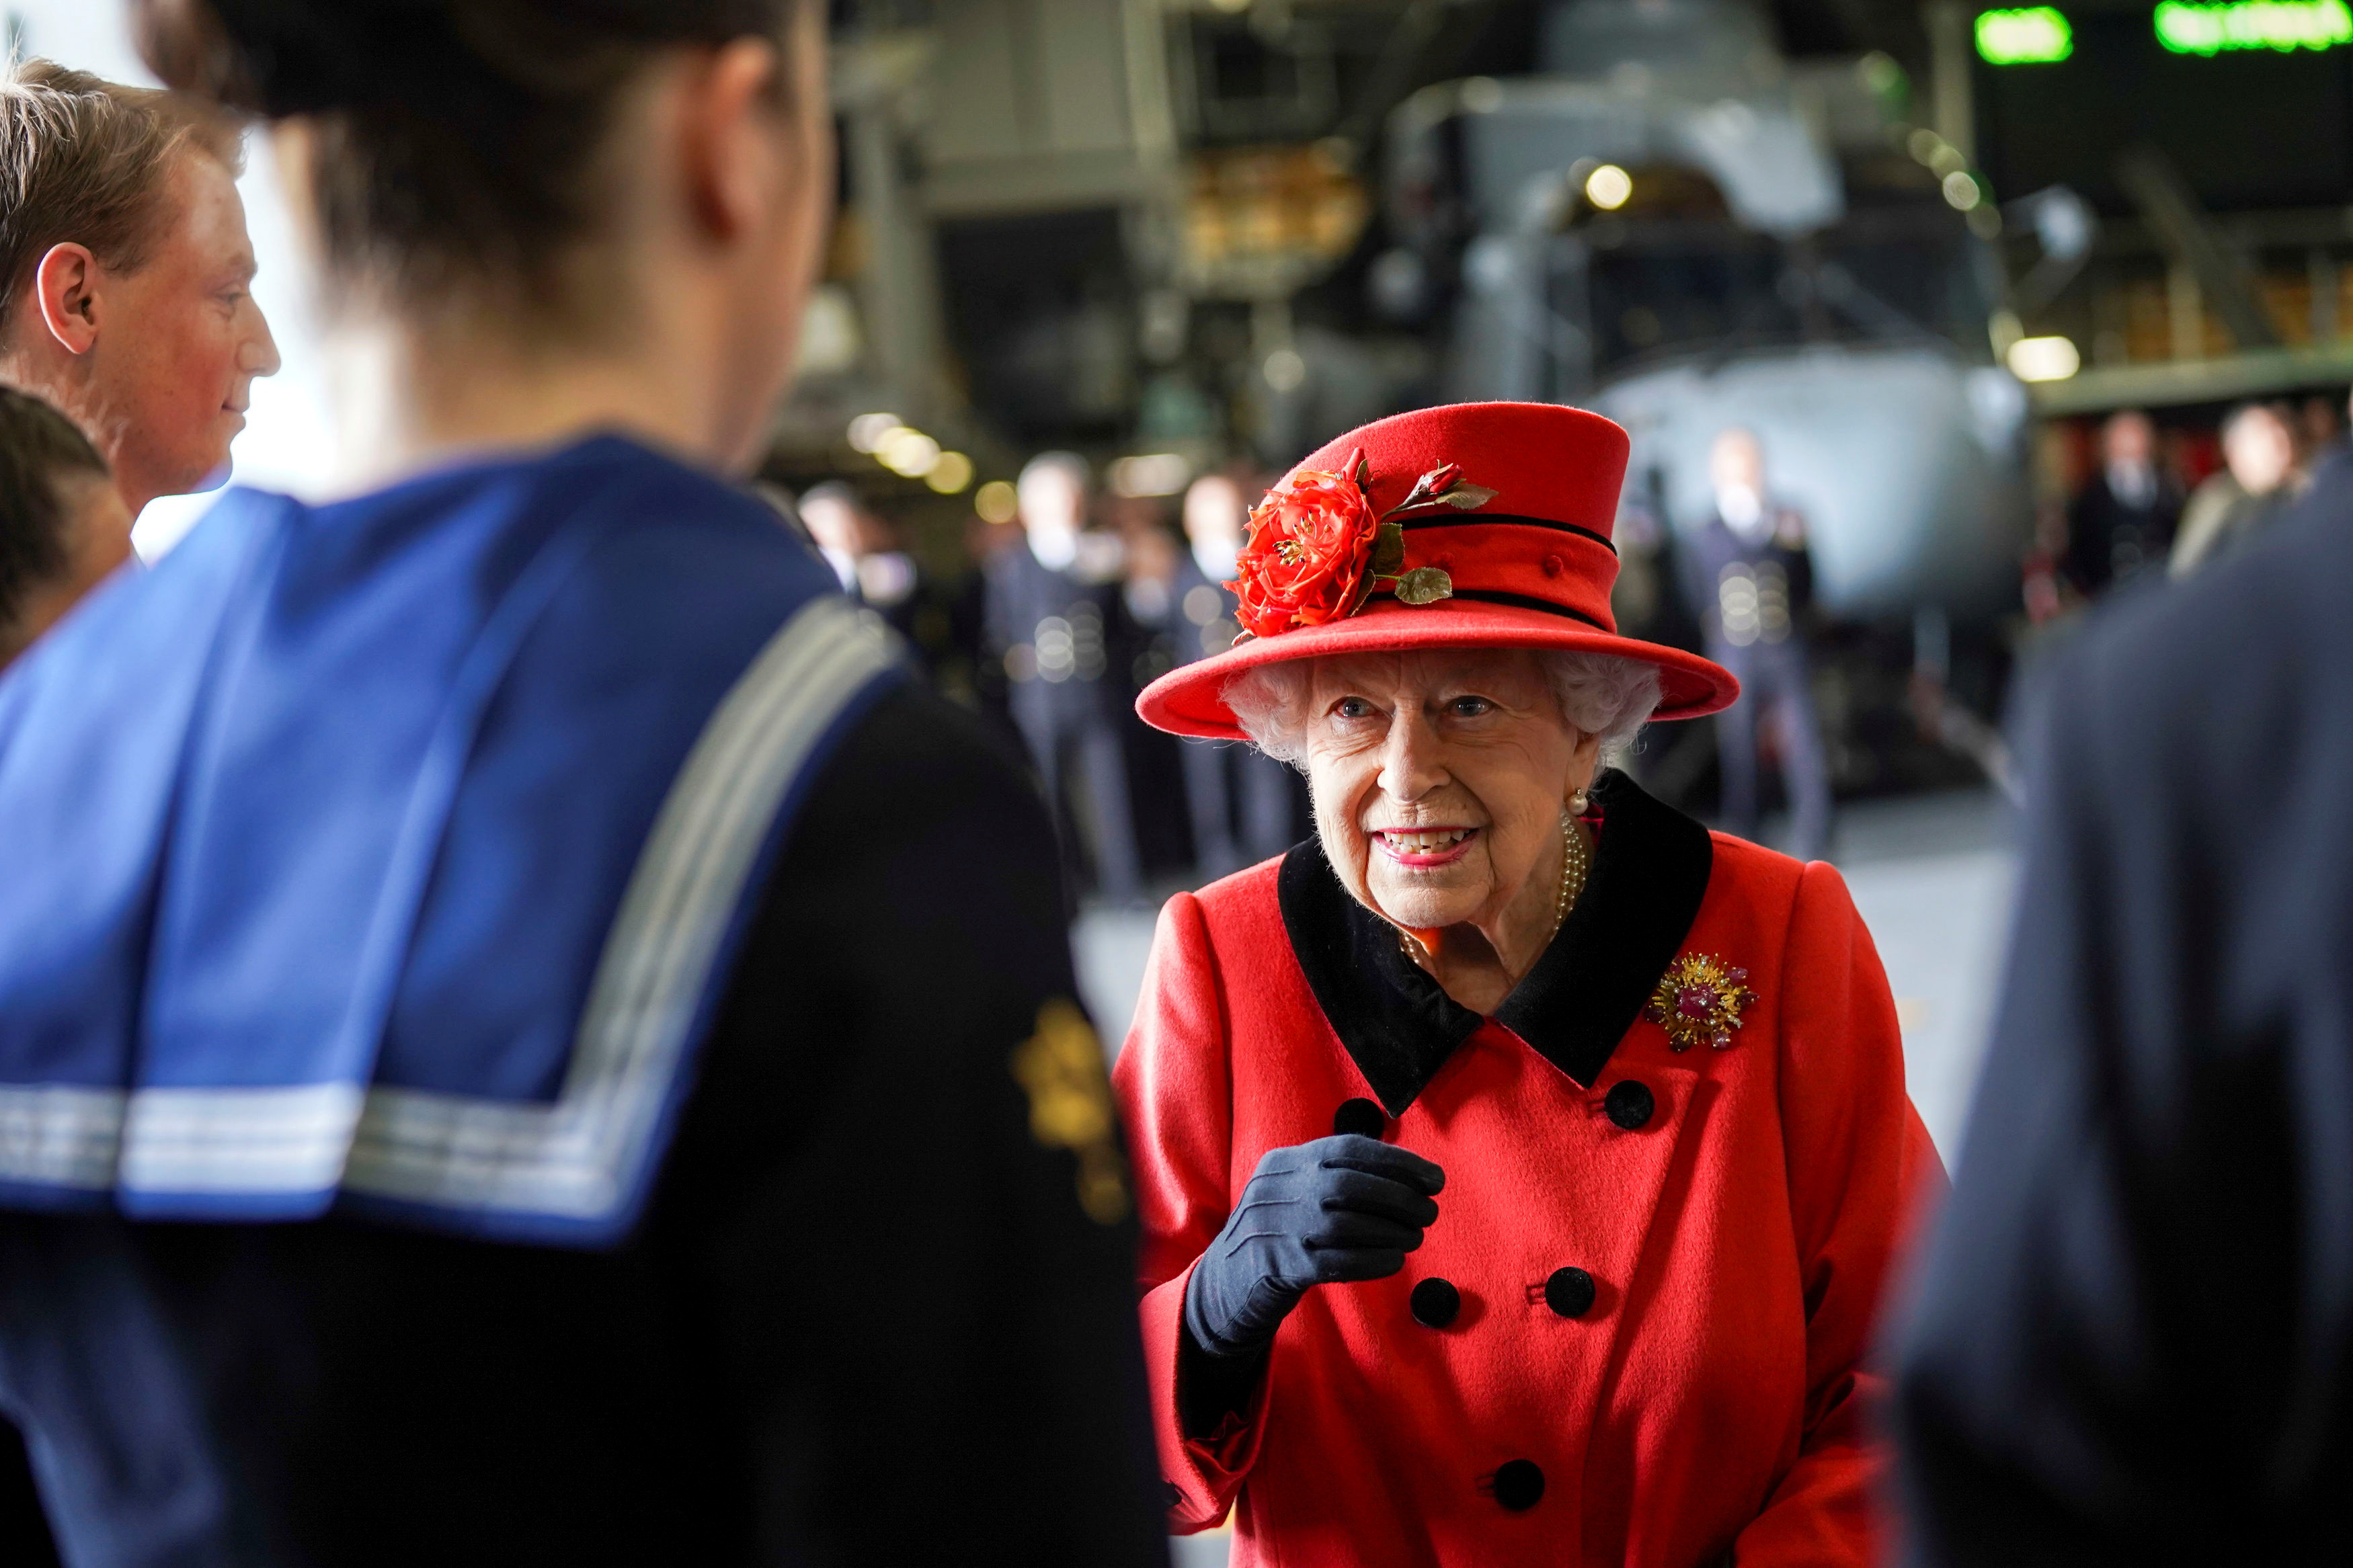 UK's Queen Elizabeth gifted rose as royals remember Prince Philip